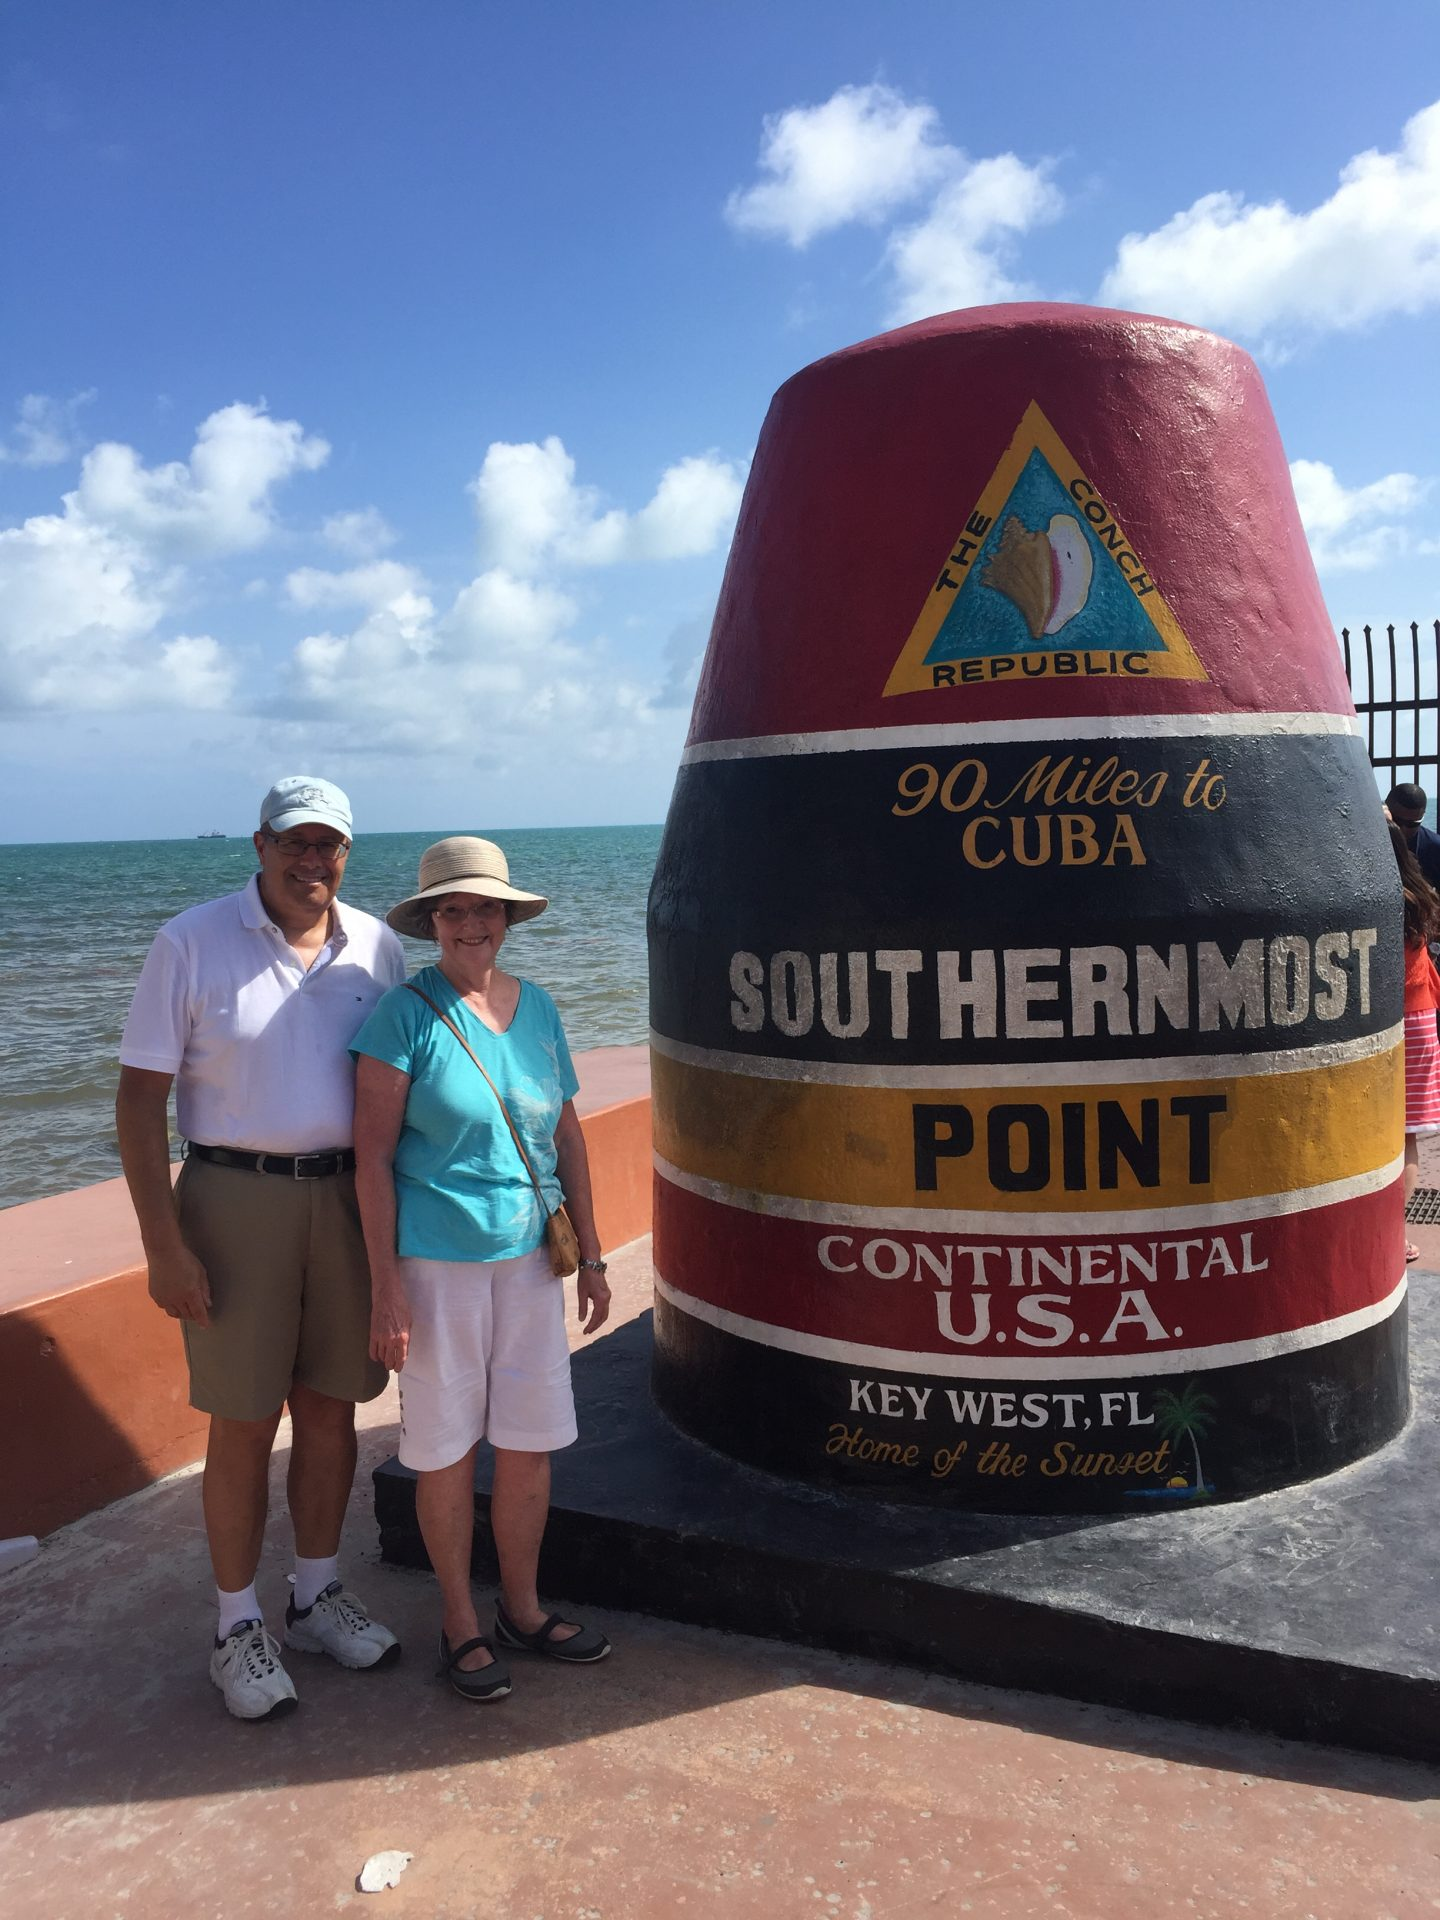 Peg and I in Key West. This is the Southern most point in the US. Peg loved going to Key West and watching the sun set.